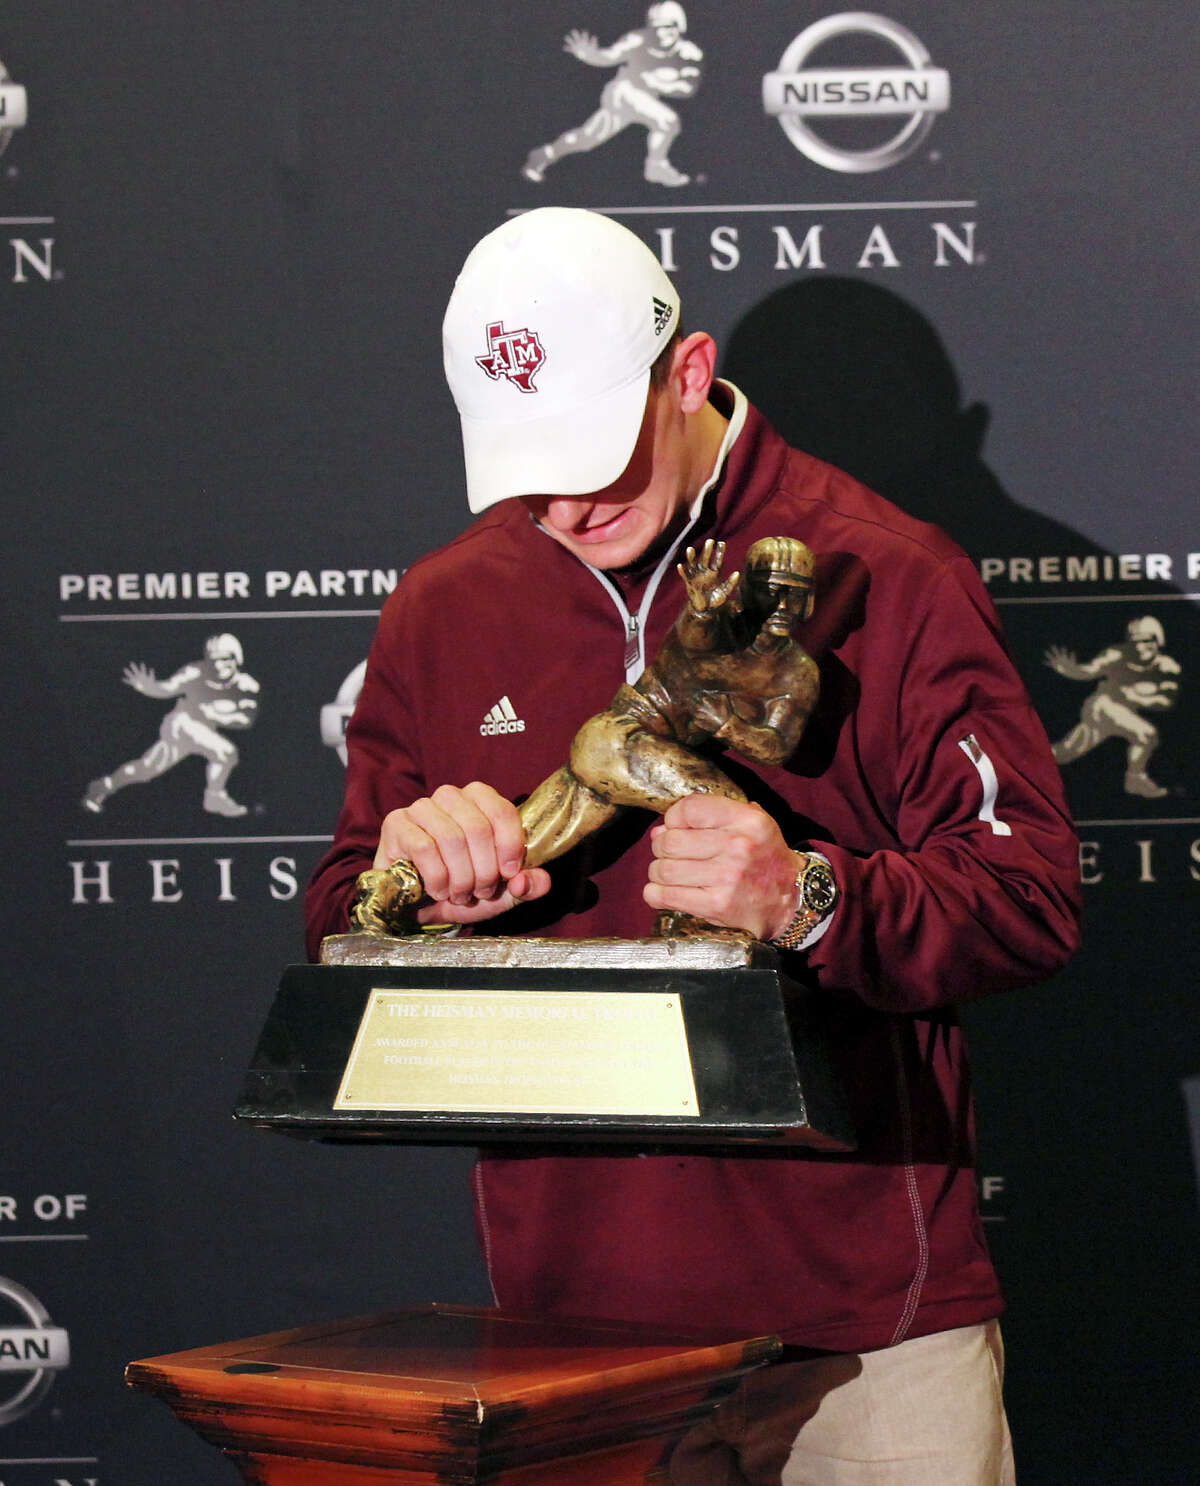 Heisman finalist Texas A&M's quarterback Johnny Manziel lifts the trophy as he poses for the media during a press conference Friday Dec. 7, 2012 at the New York Marriott Marquis hotel in New York, New York.